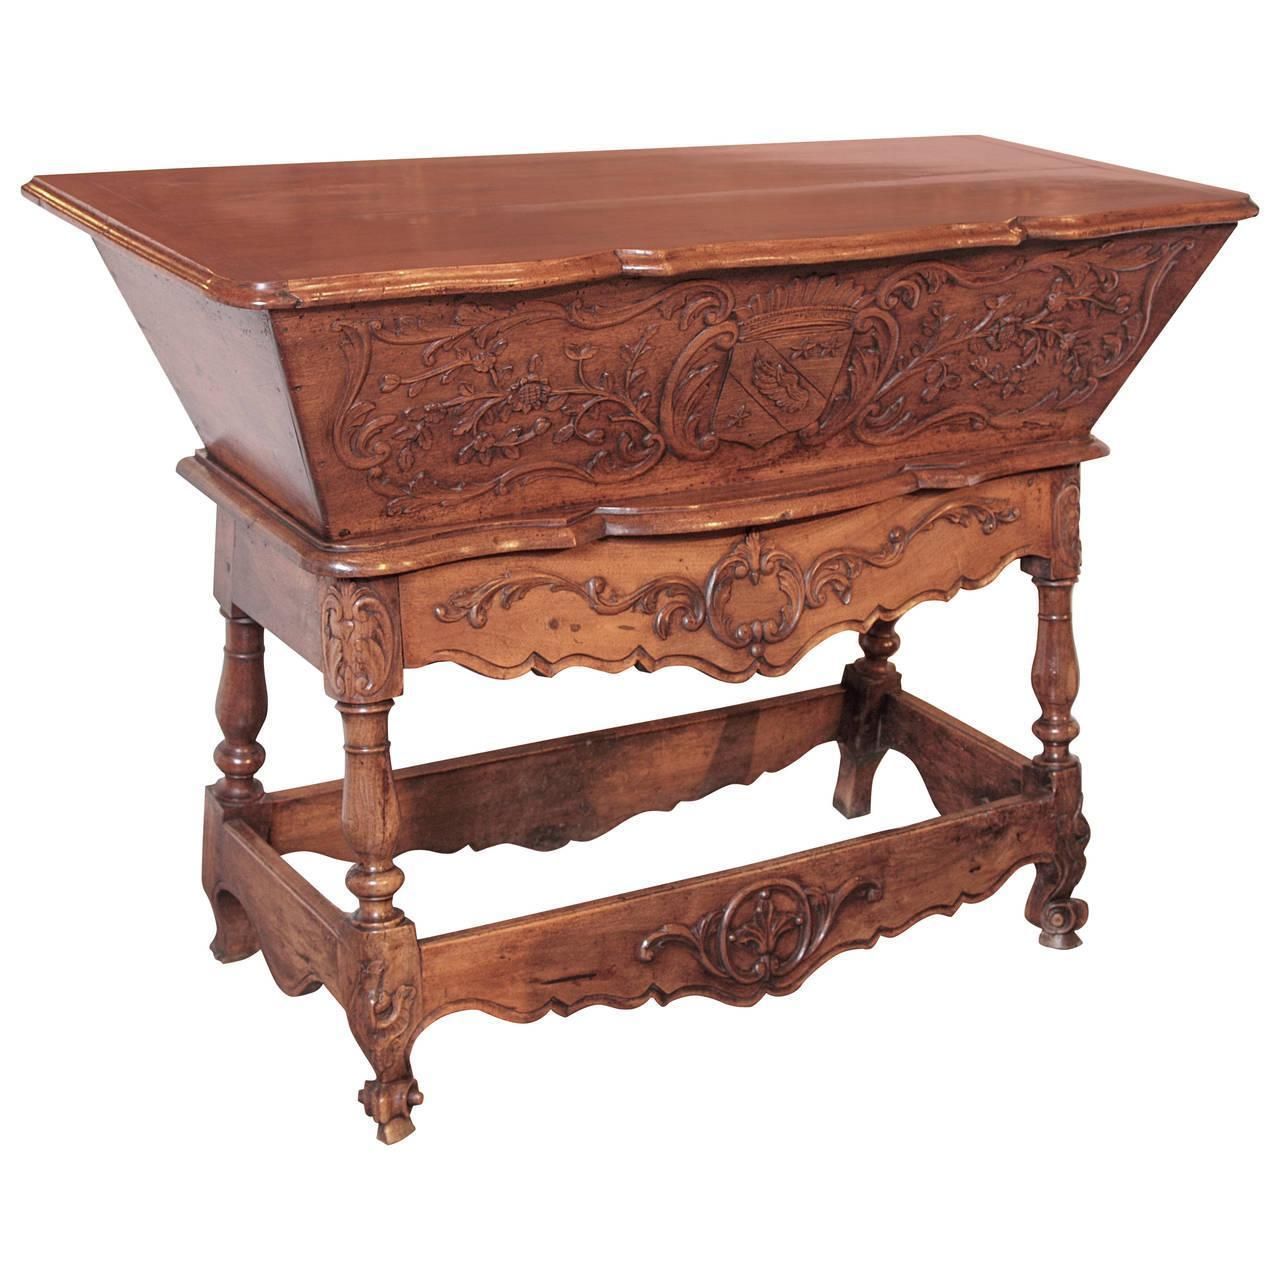 Antique Walnut Wood Petrin from France, 19th Century